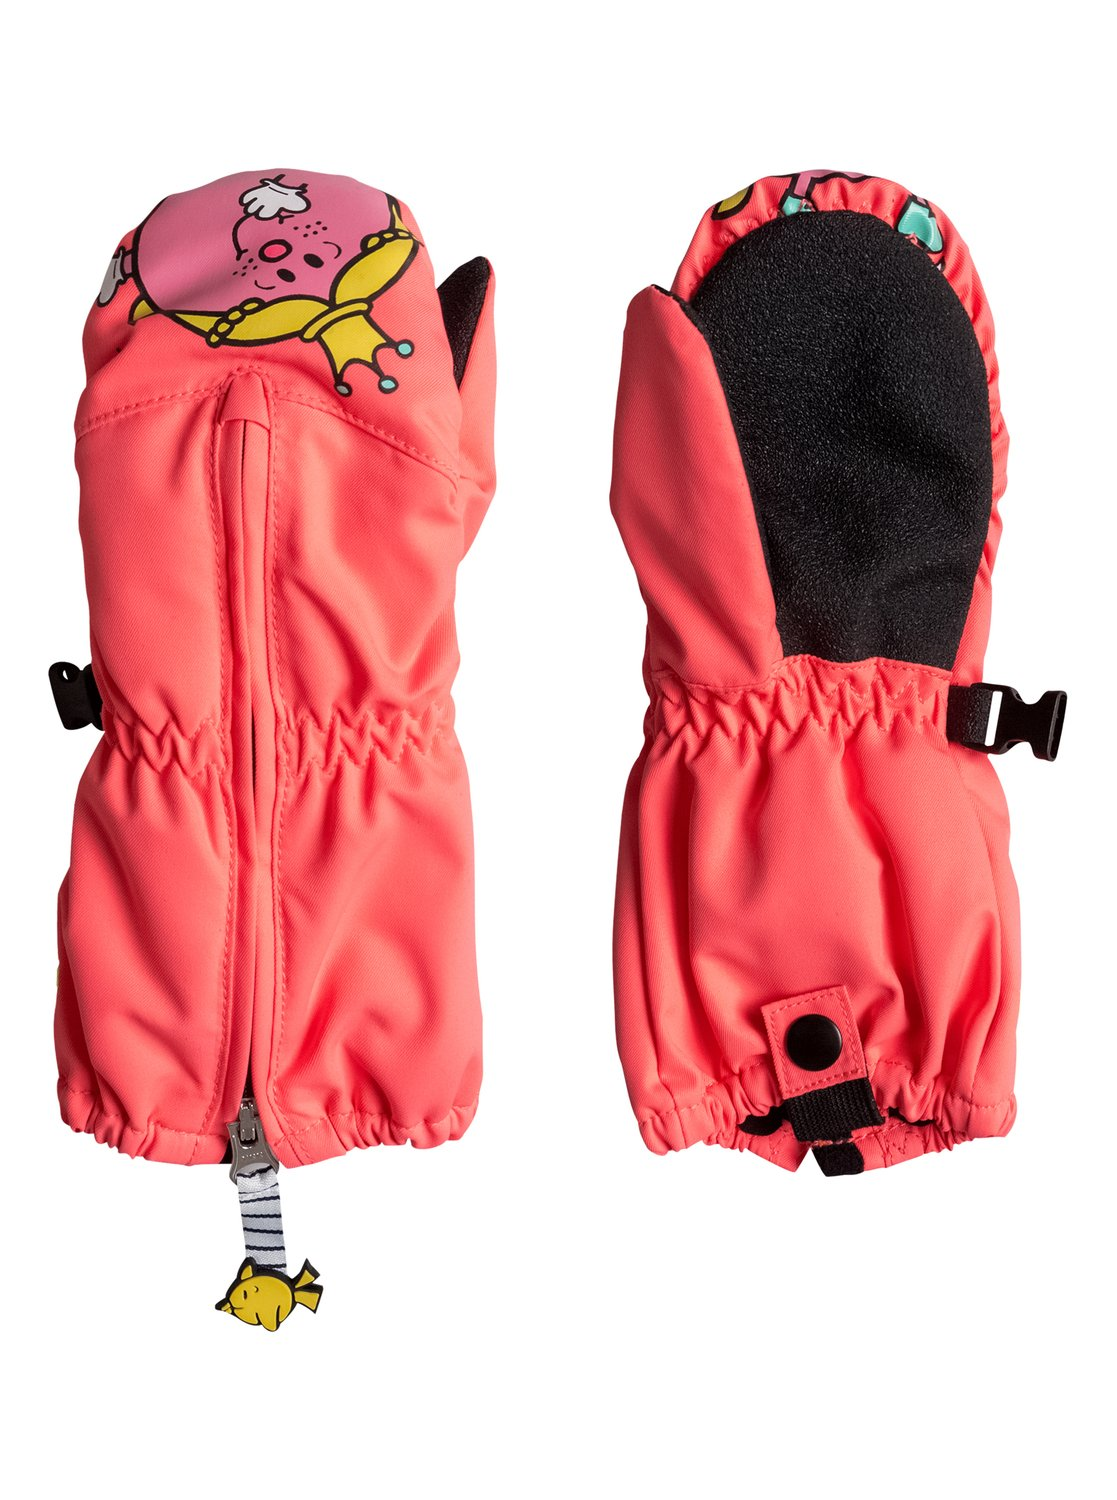 Snow's Up Little Miss - Moufles de snowboard/ski pour Fille - Roxy